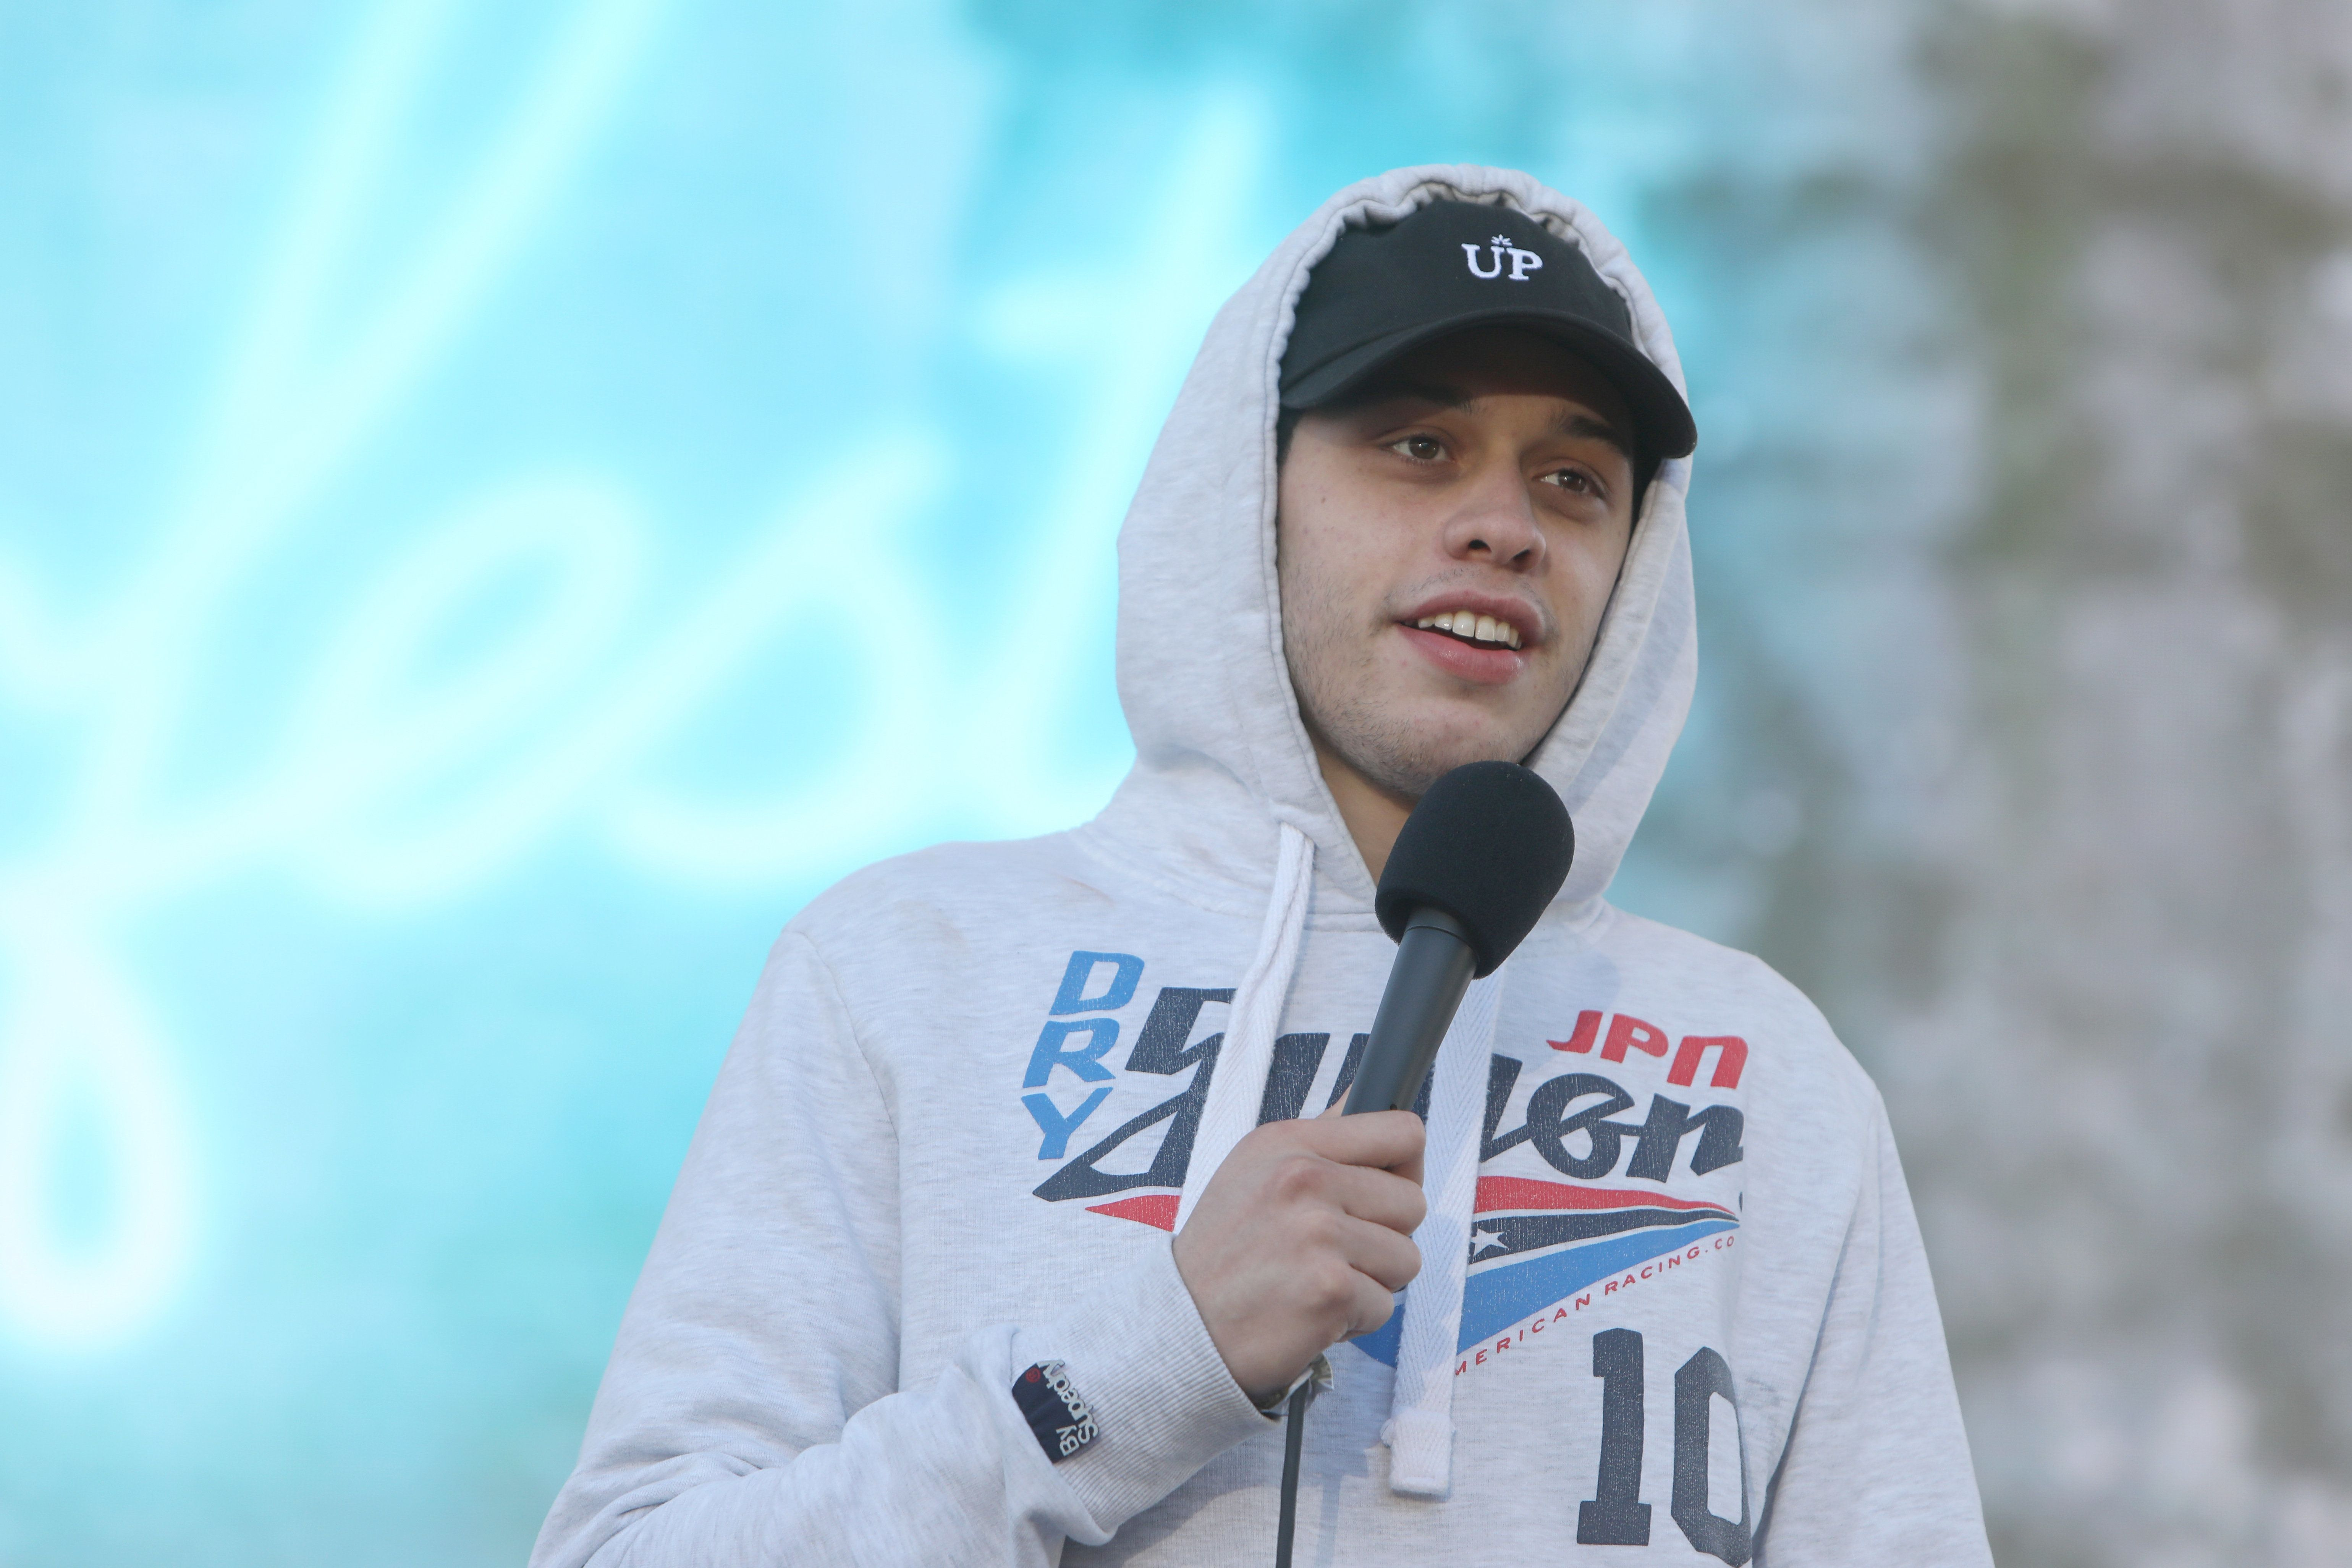 SAN FRANCISCO, CA - JUNE 03:  Comedian Pete Davidson performs onstage at the Piazza Del Cluster Stage during Colossal Clusterfest at Civic Center Plaza and The Bill Graham Civic Auditorium on June 3, 2017 in San Francisco, California.  (Photo by FilmMagic/FilmMagic)